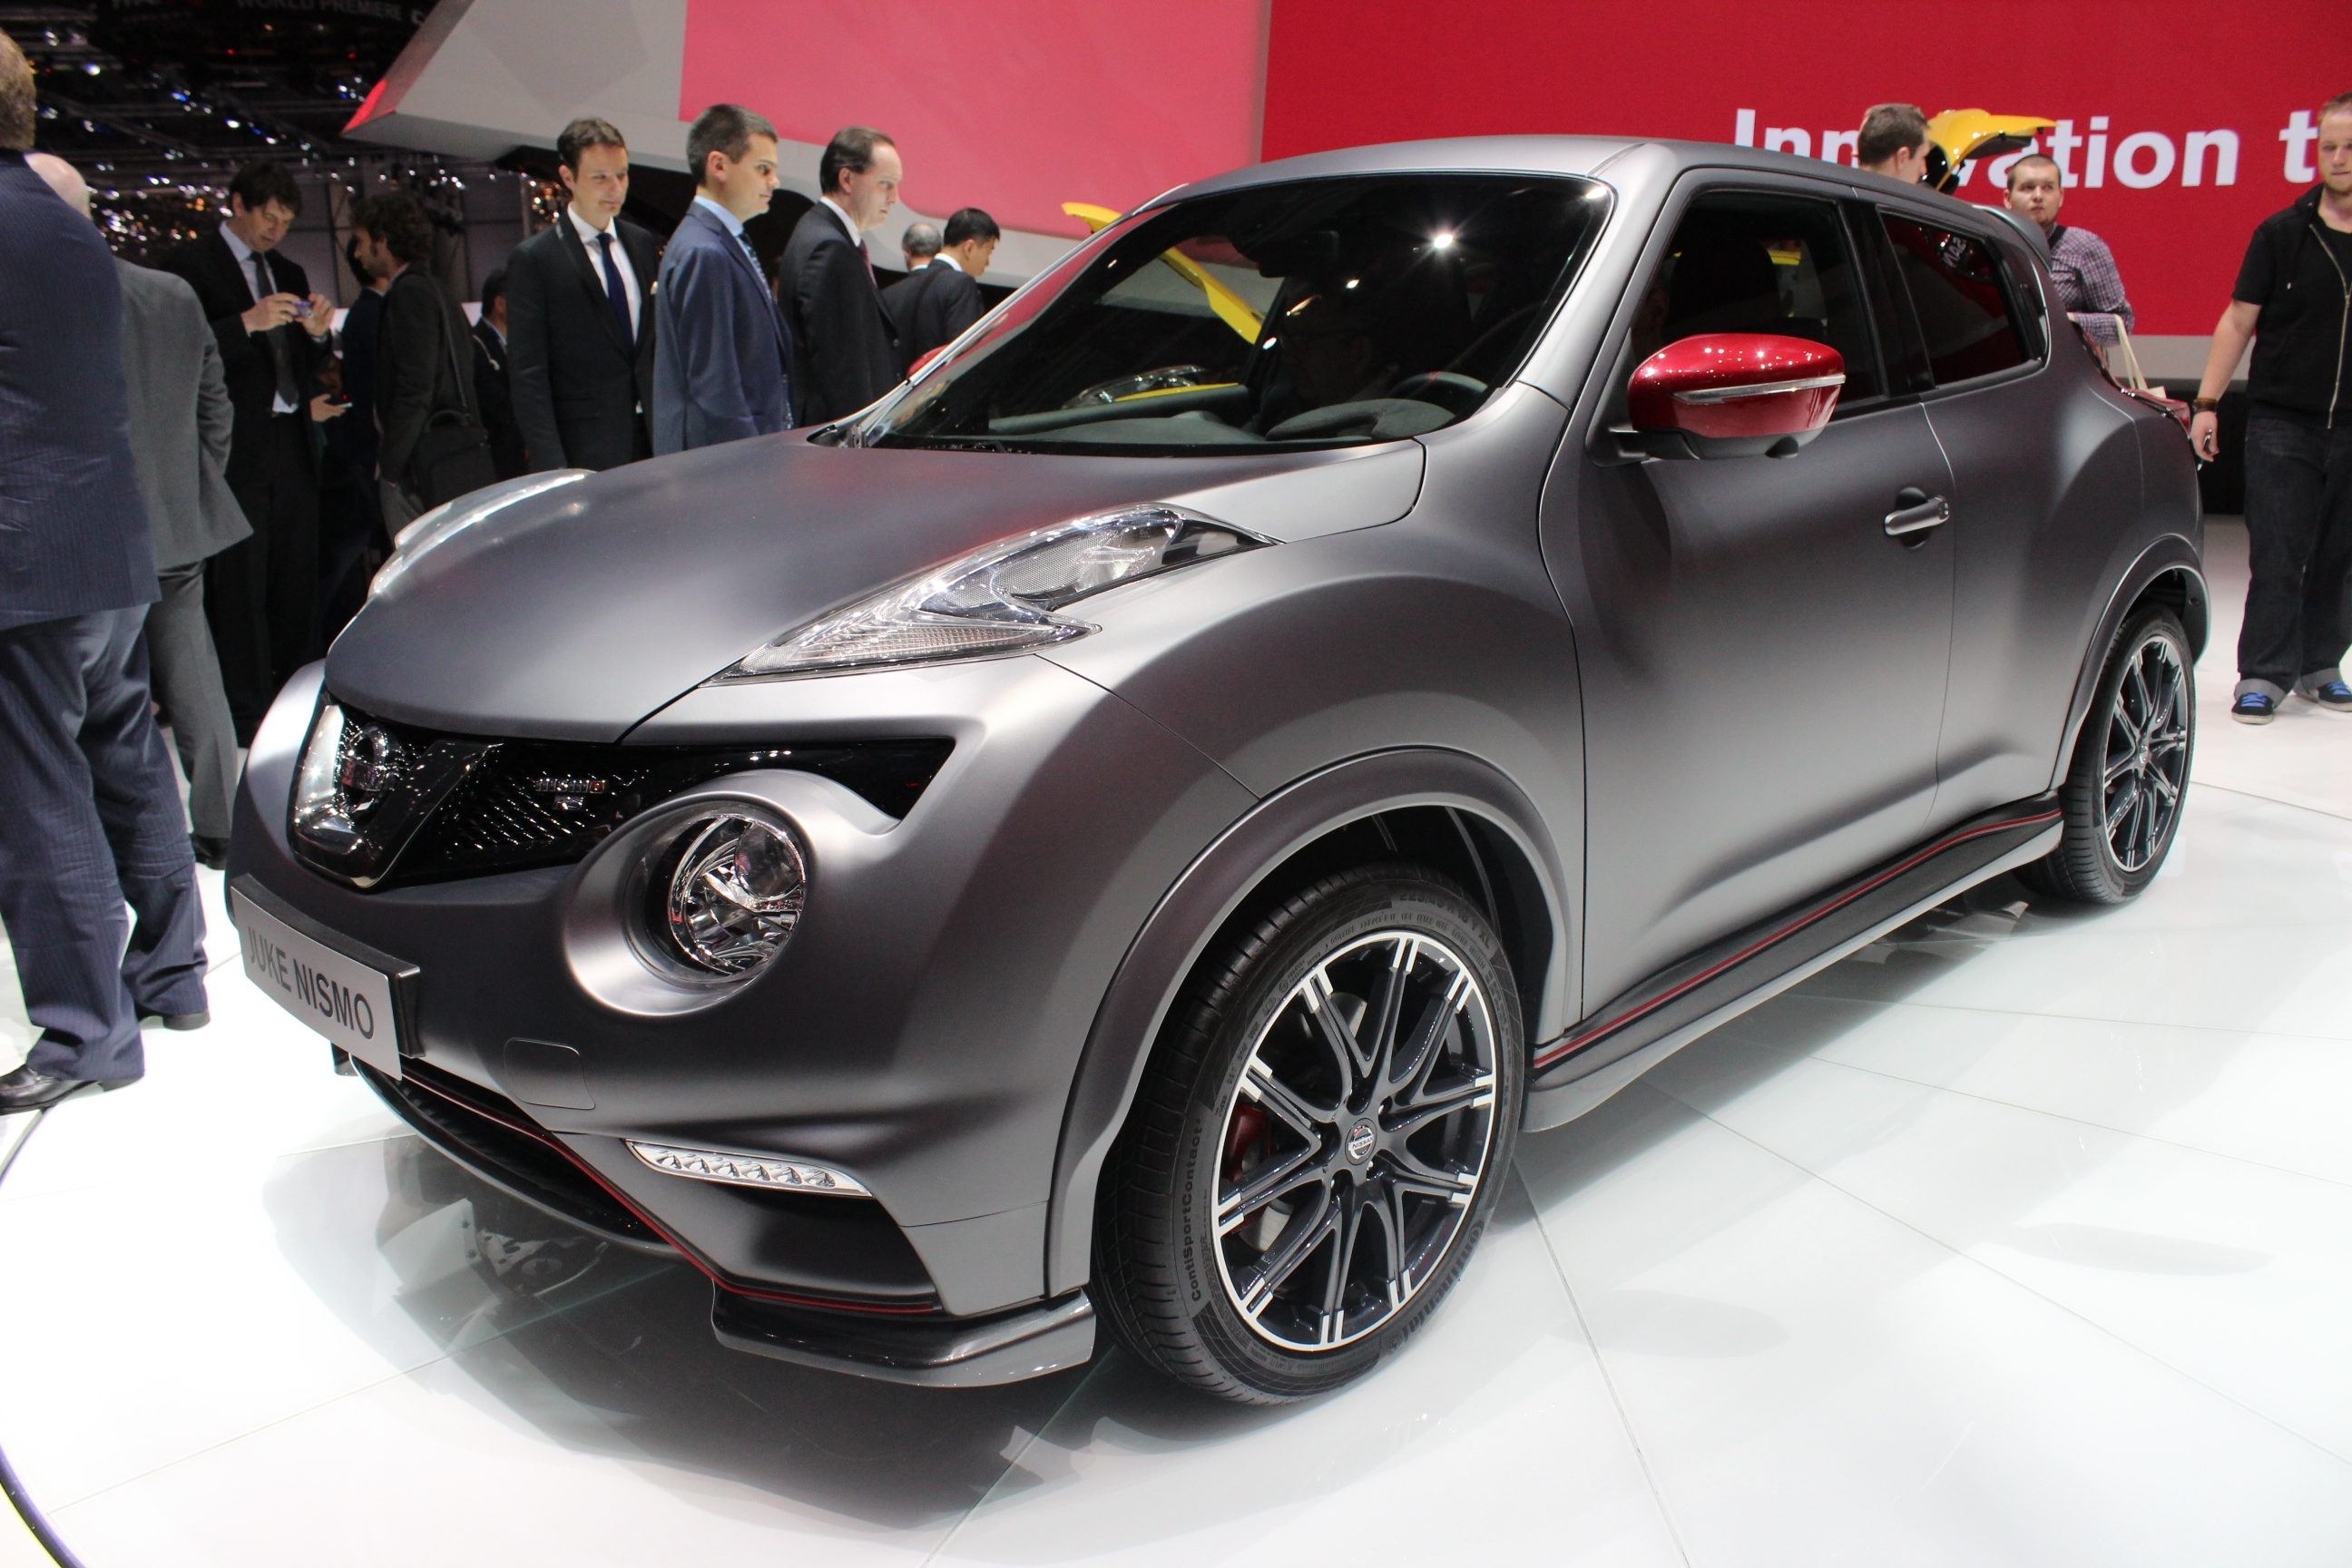 vid o en direct de gen ve 2014 nissan juke nismo rs monsieur plus. Black Bedroom Furniture Sets. Home Design Ideas